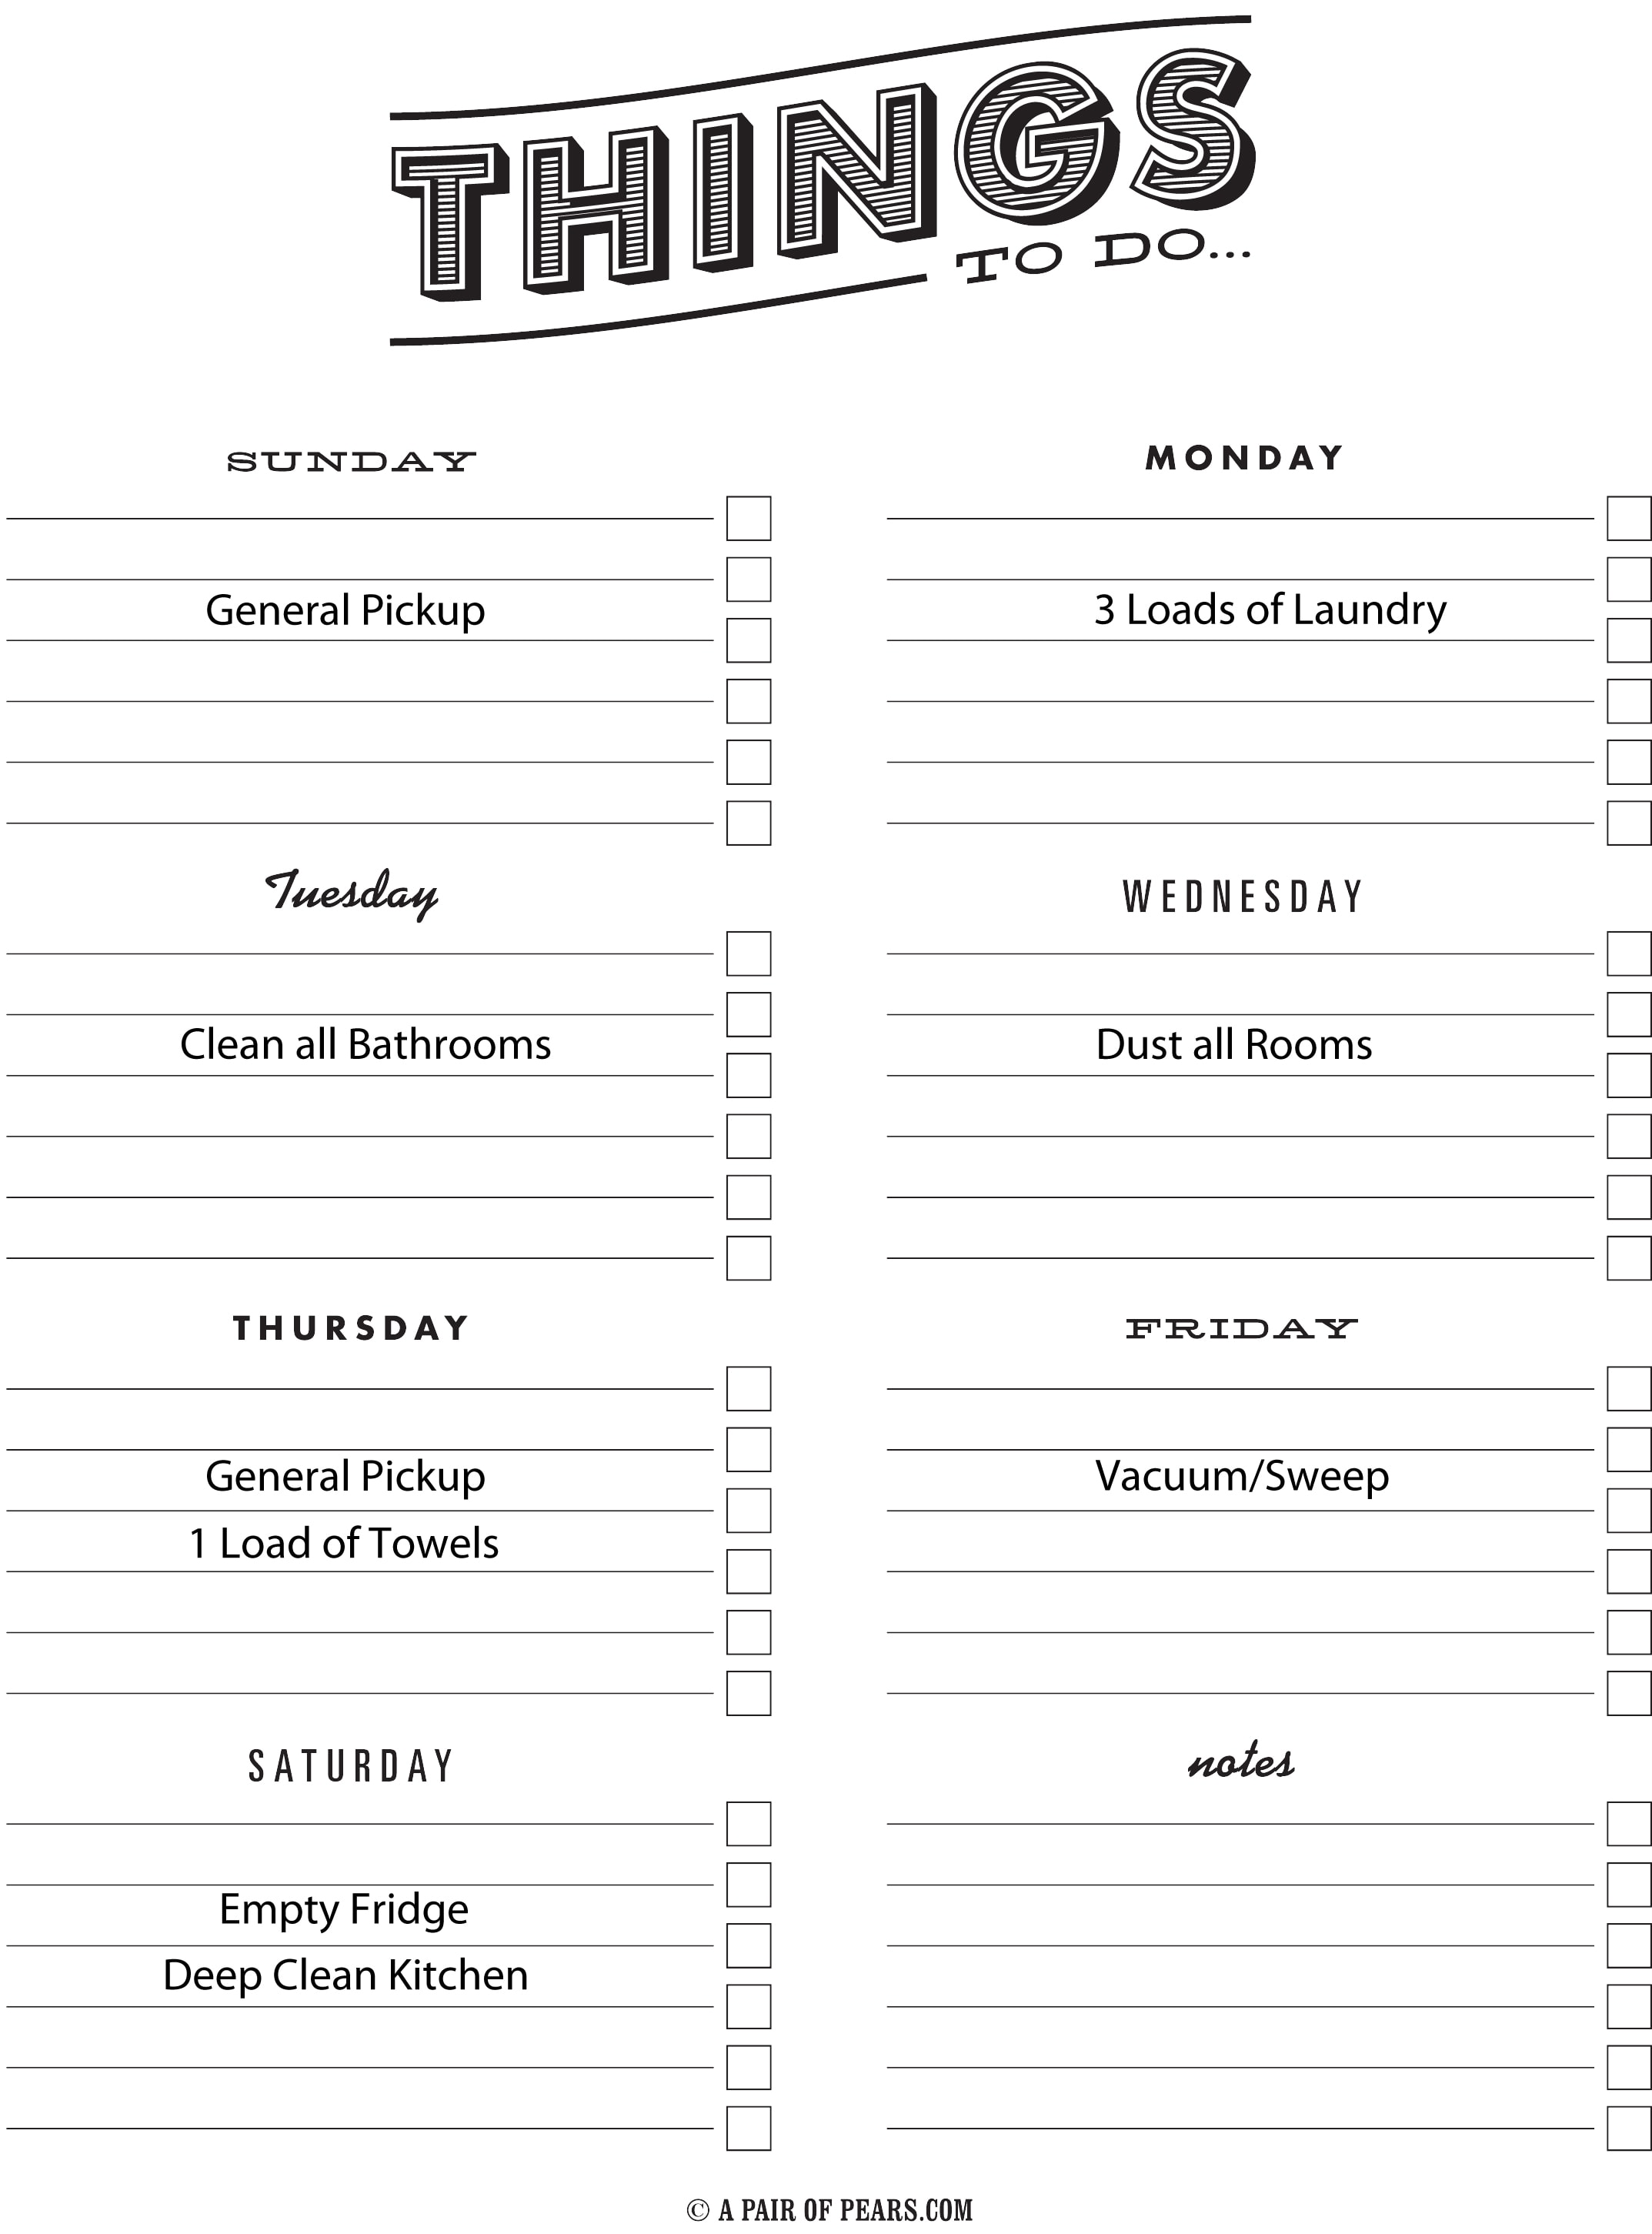 Cleaning Schedule And Tips